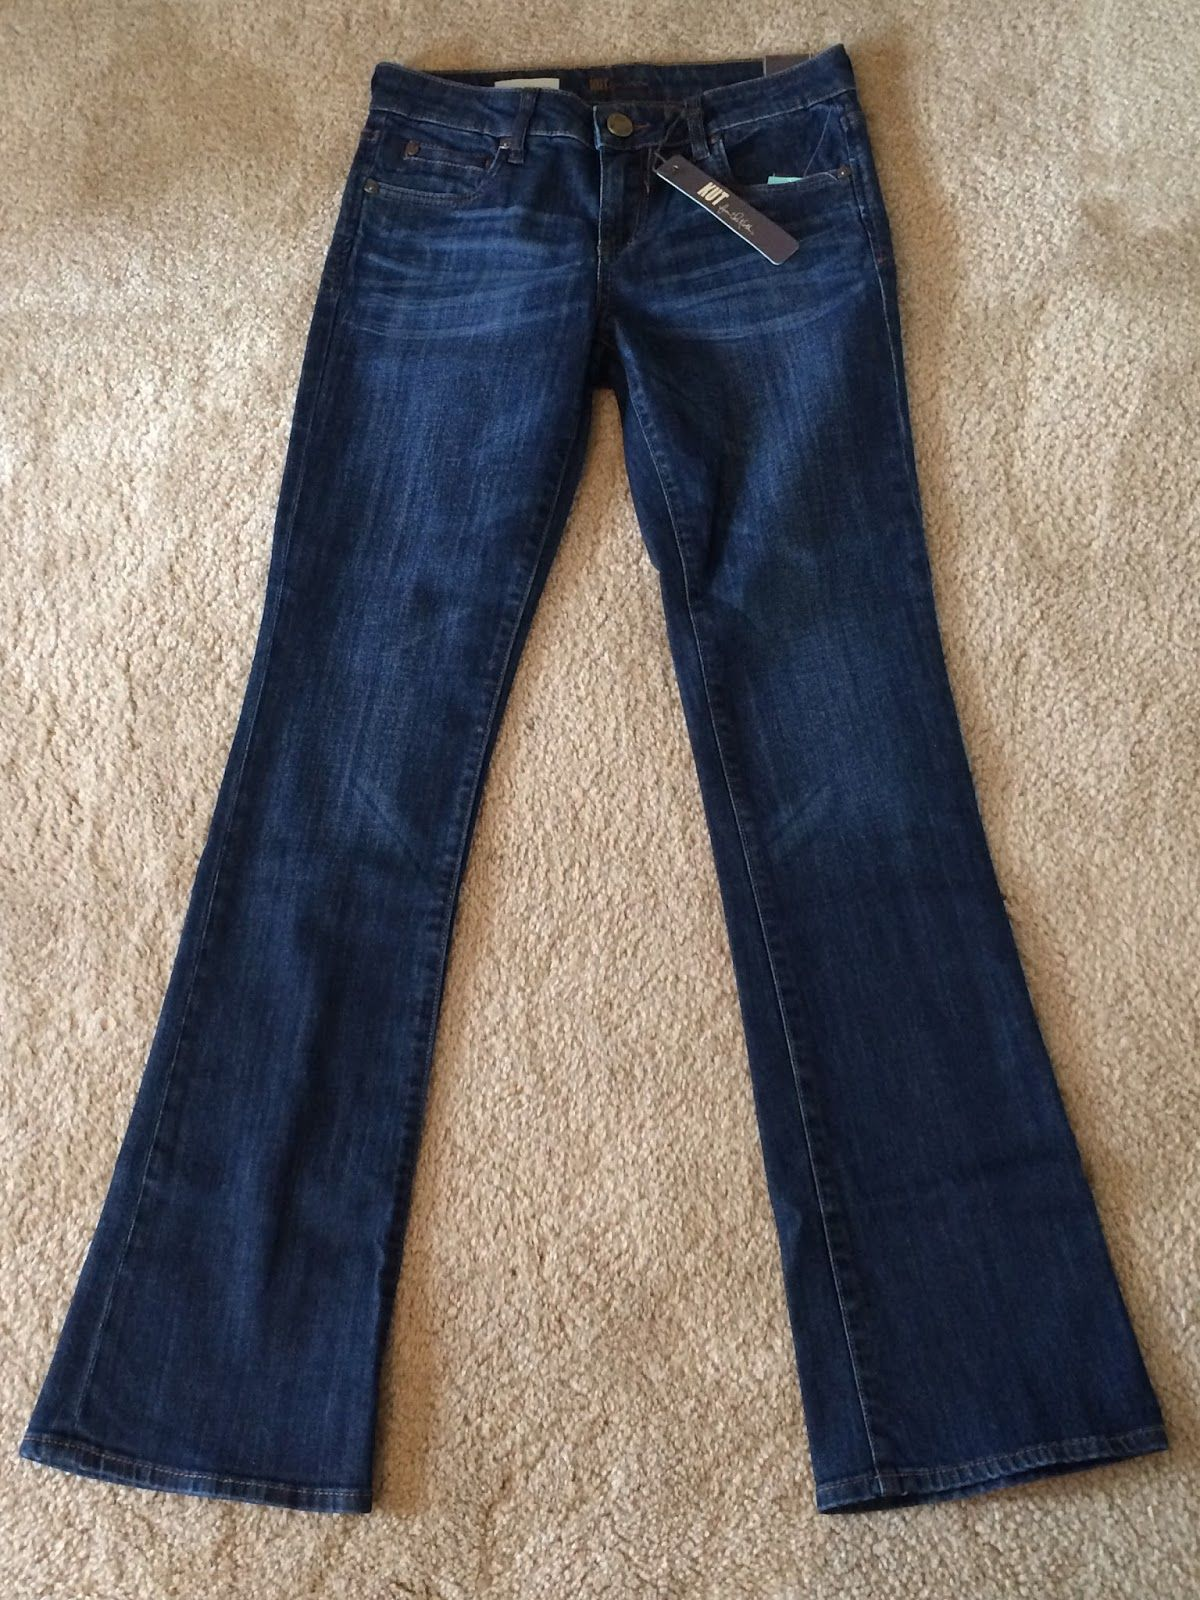 5e6b089f64 Kut From the Kloth Cai Bootcut Jean (From Stitch Fix  1) - fit well ...